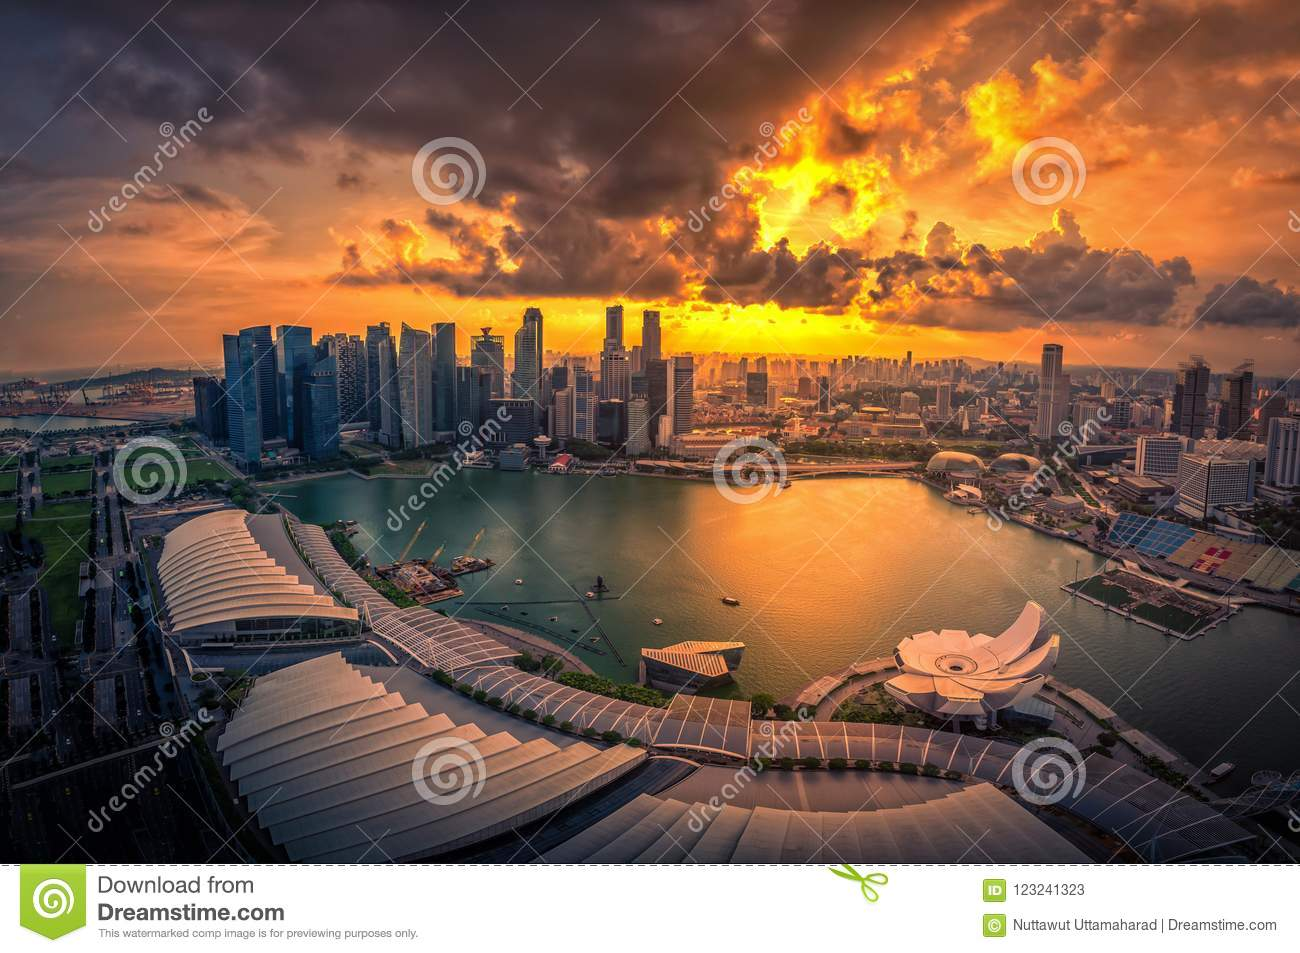 Singapore Skyline and view of skyscrapers on Marina Bay at sunset.